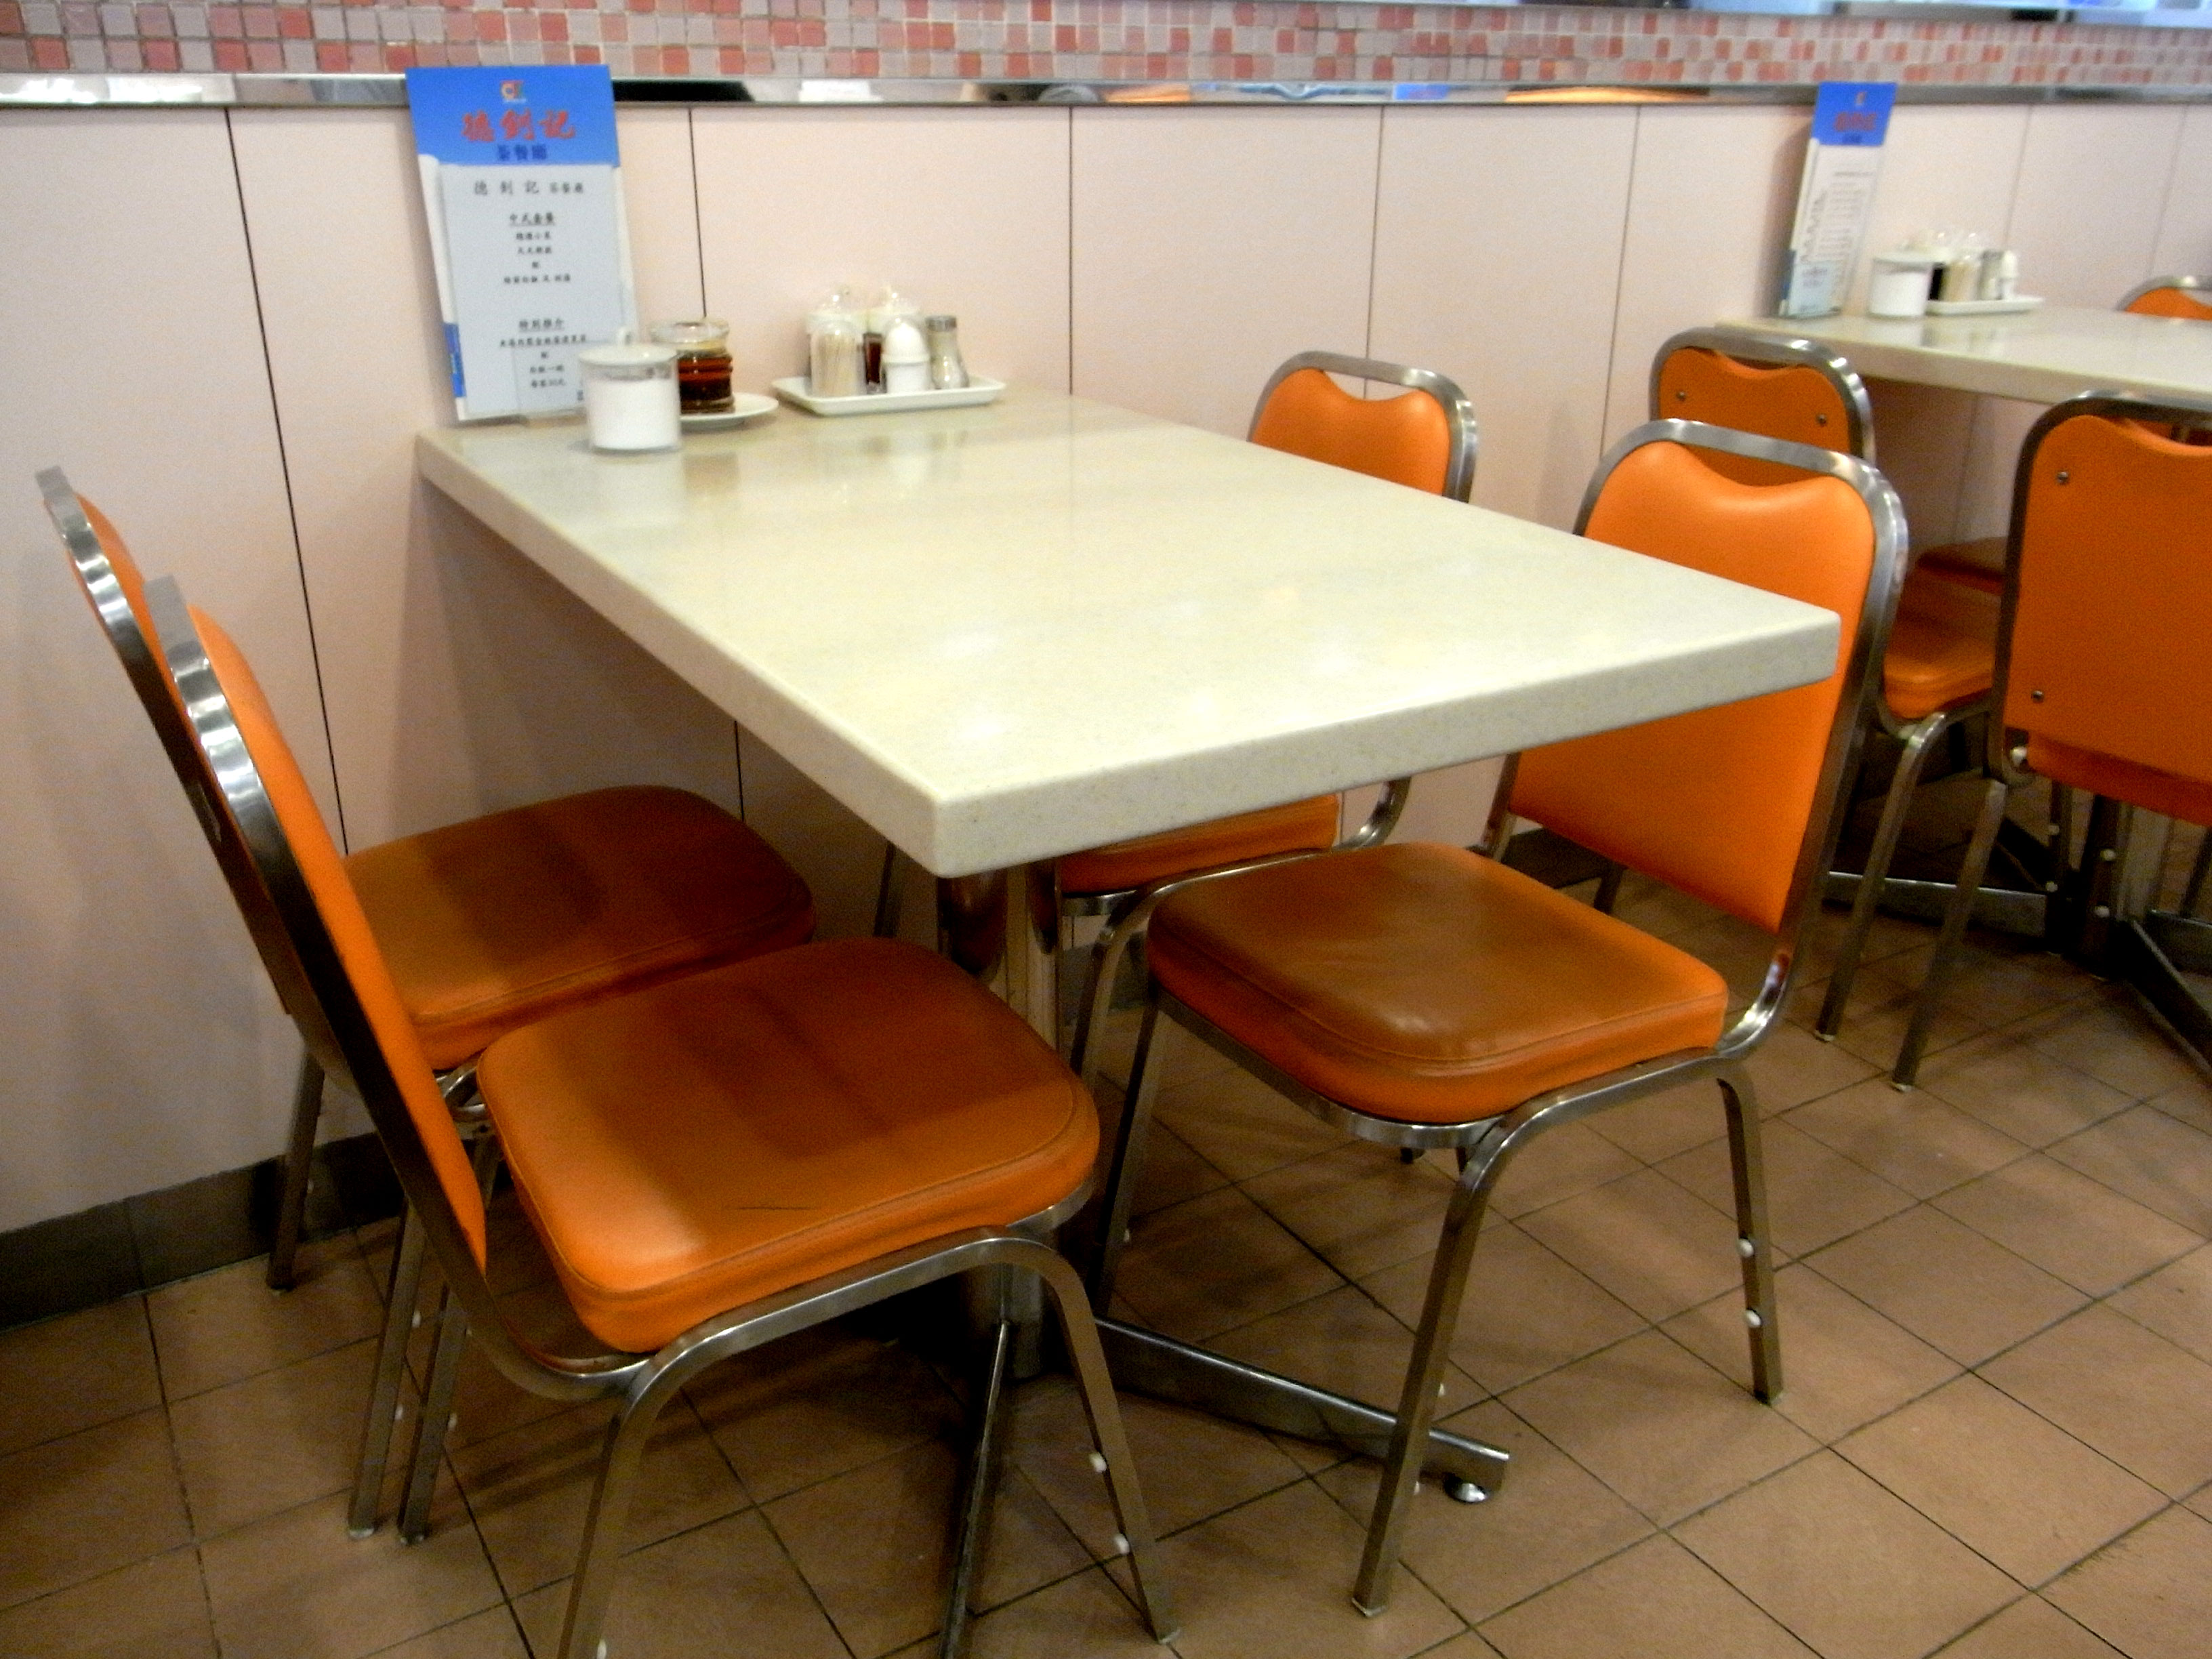 Beau File:HK Sheung Wan 德釗記茶餐廳 Tak Chiu Kee Restaurant Table Chairs